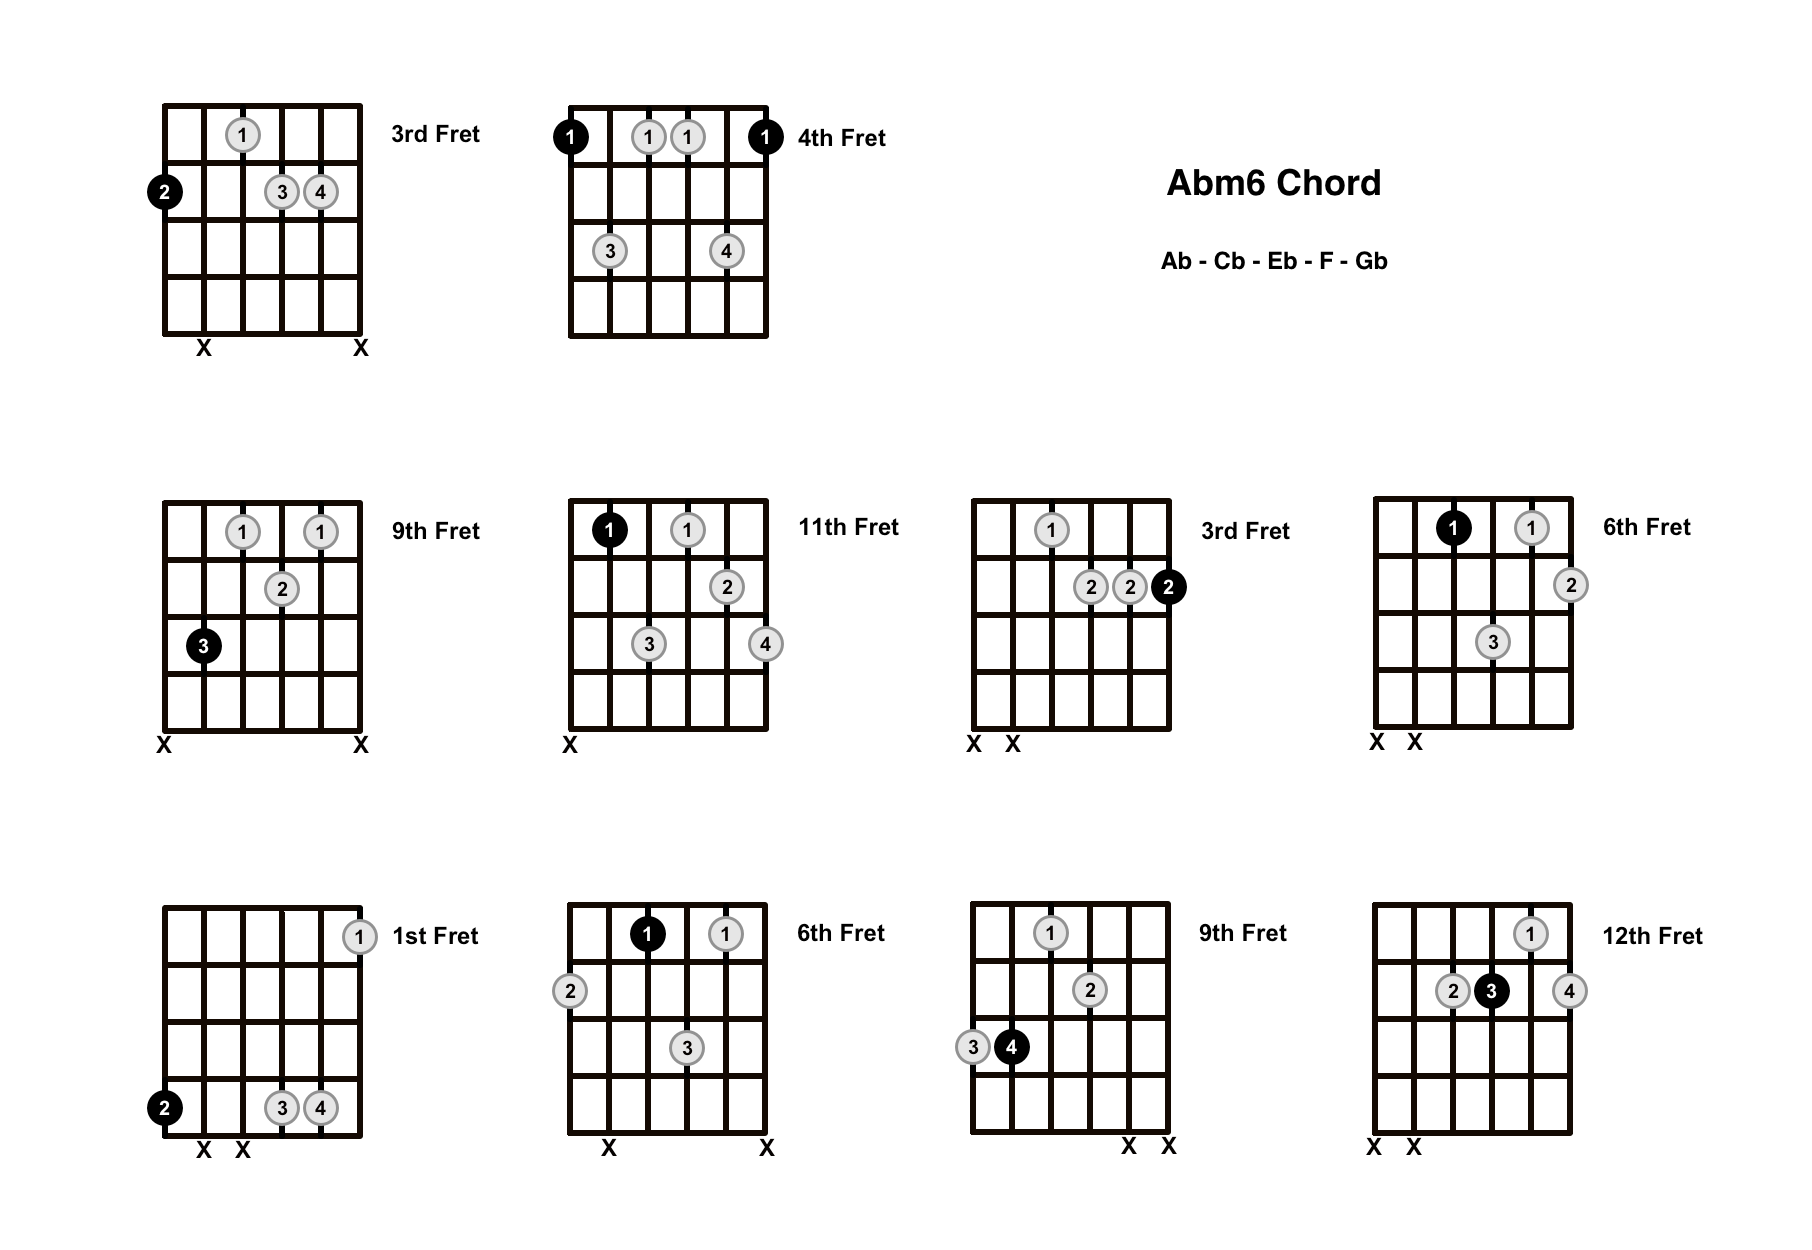 Abm6 Chord On The Guitar (A Flat minor 6) – Diagrams, Finger Positions and Theory